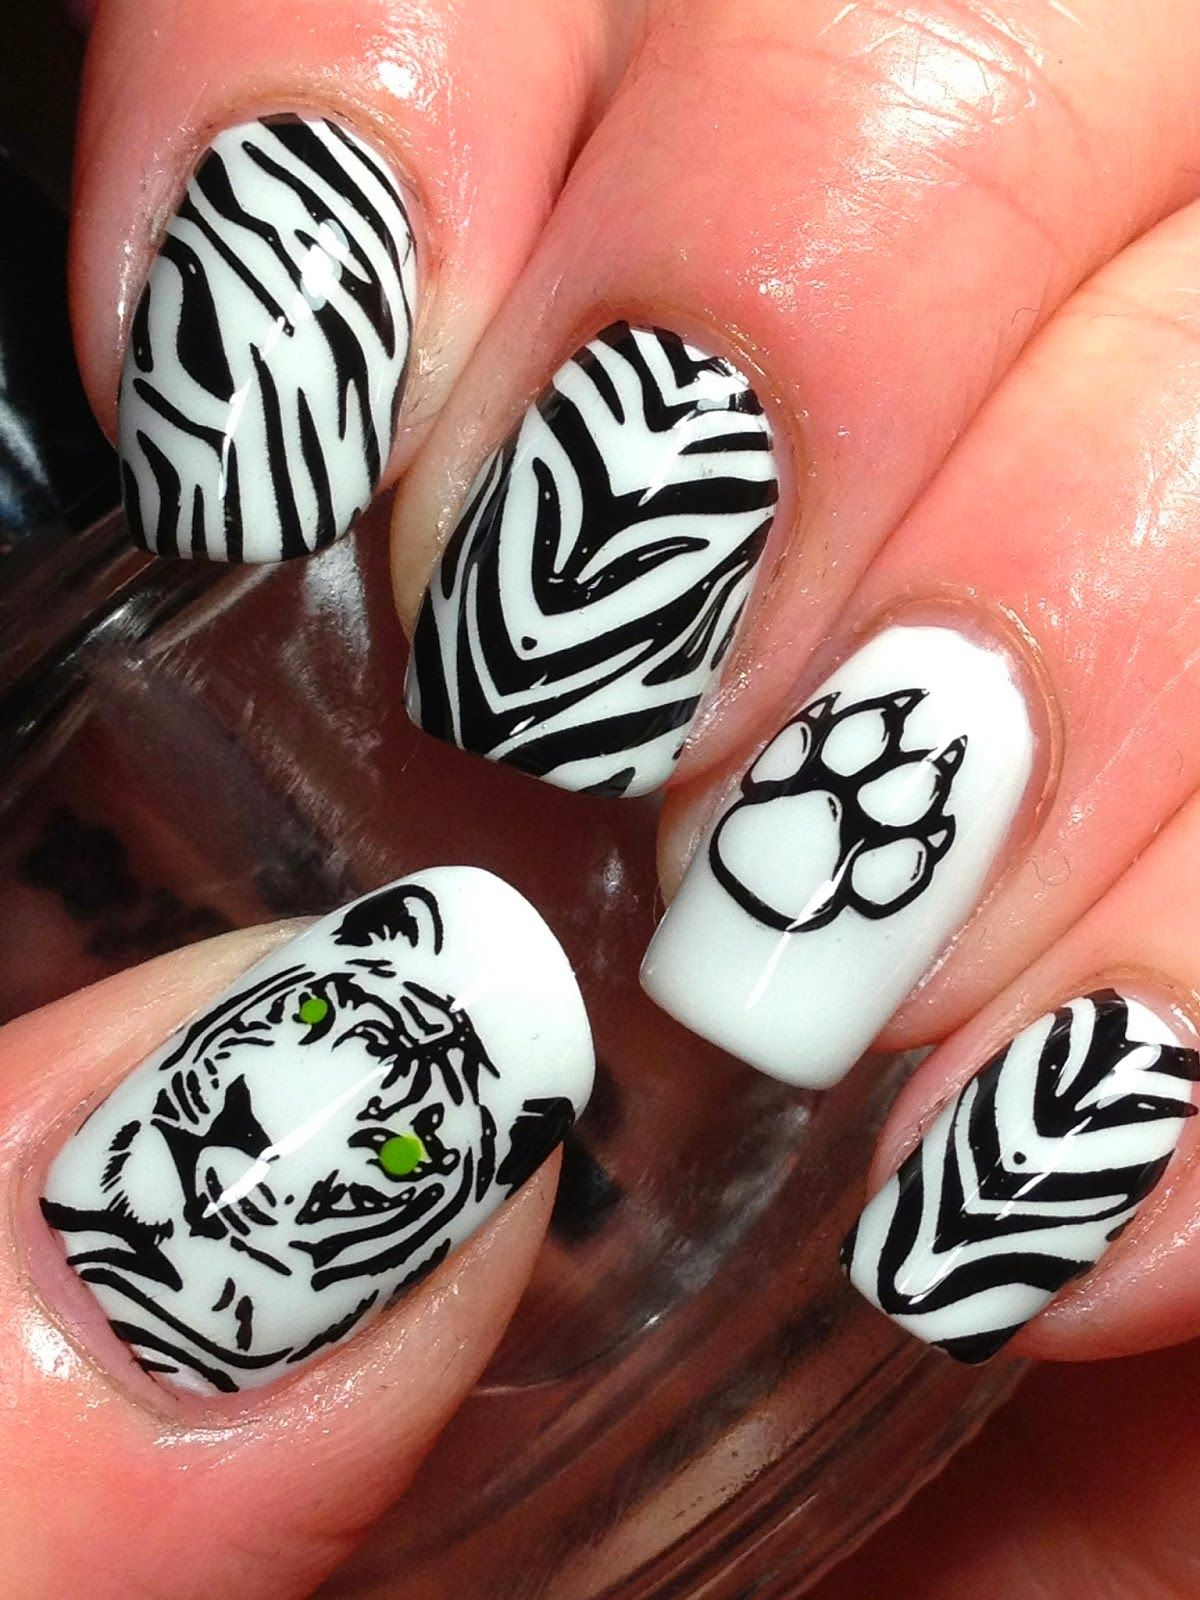 Infinity 12 | Infinity Nails Stamping | Pinterest | Infinity ...